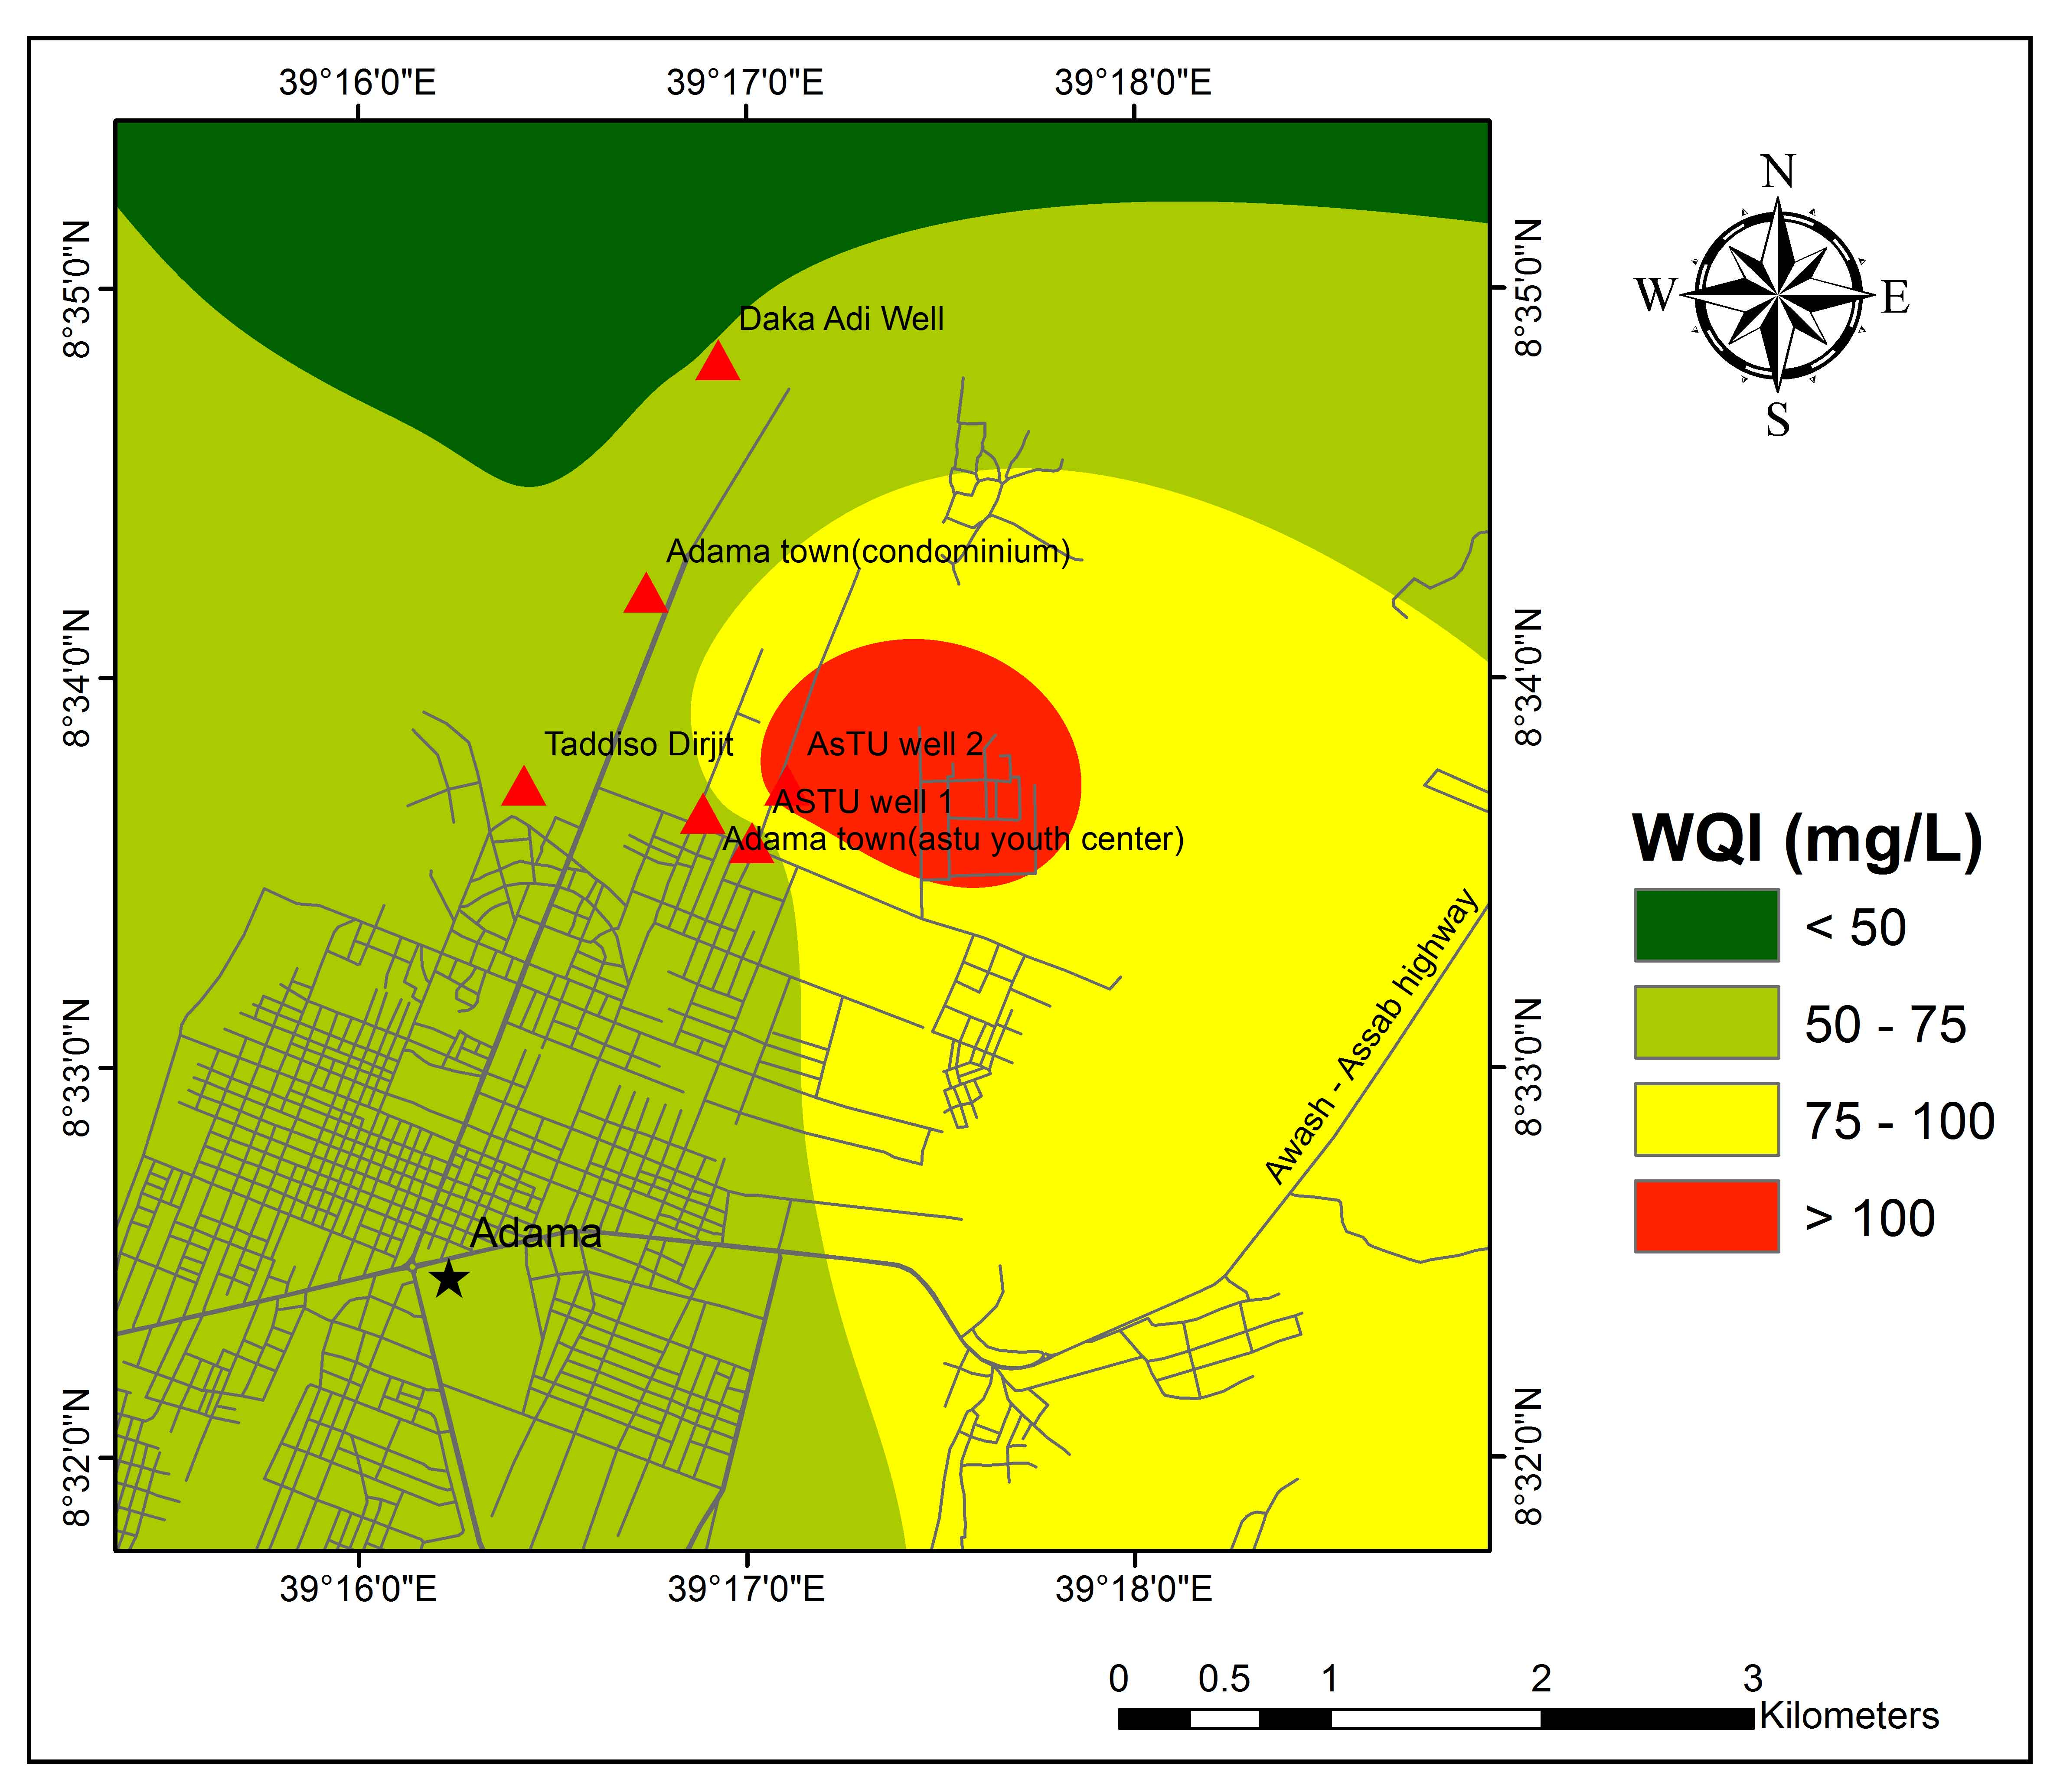 Groundwater Quality Assessment Using Geospatial Techniques and WQI in North East of Adama Town, Oromia Region, Ethiopia